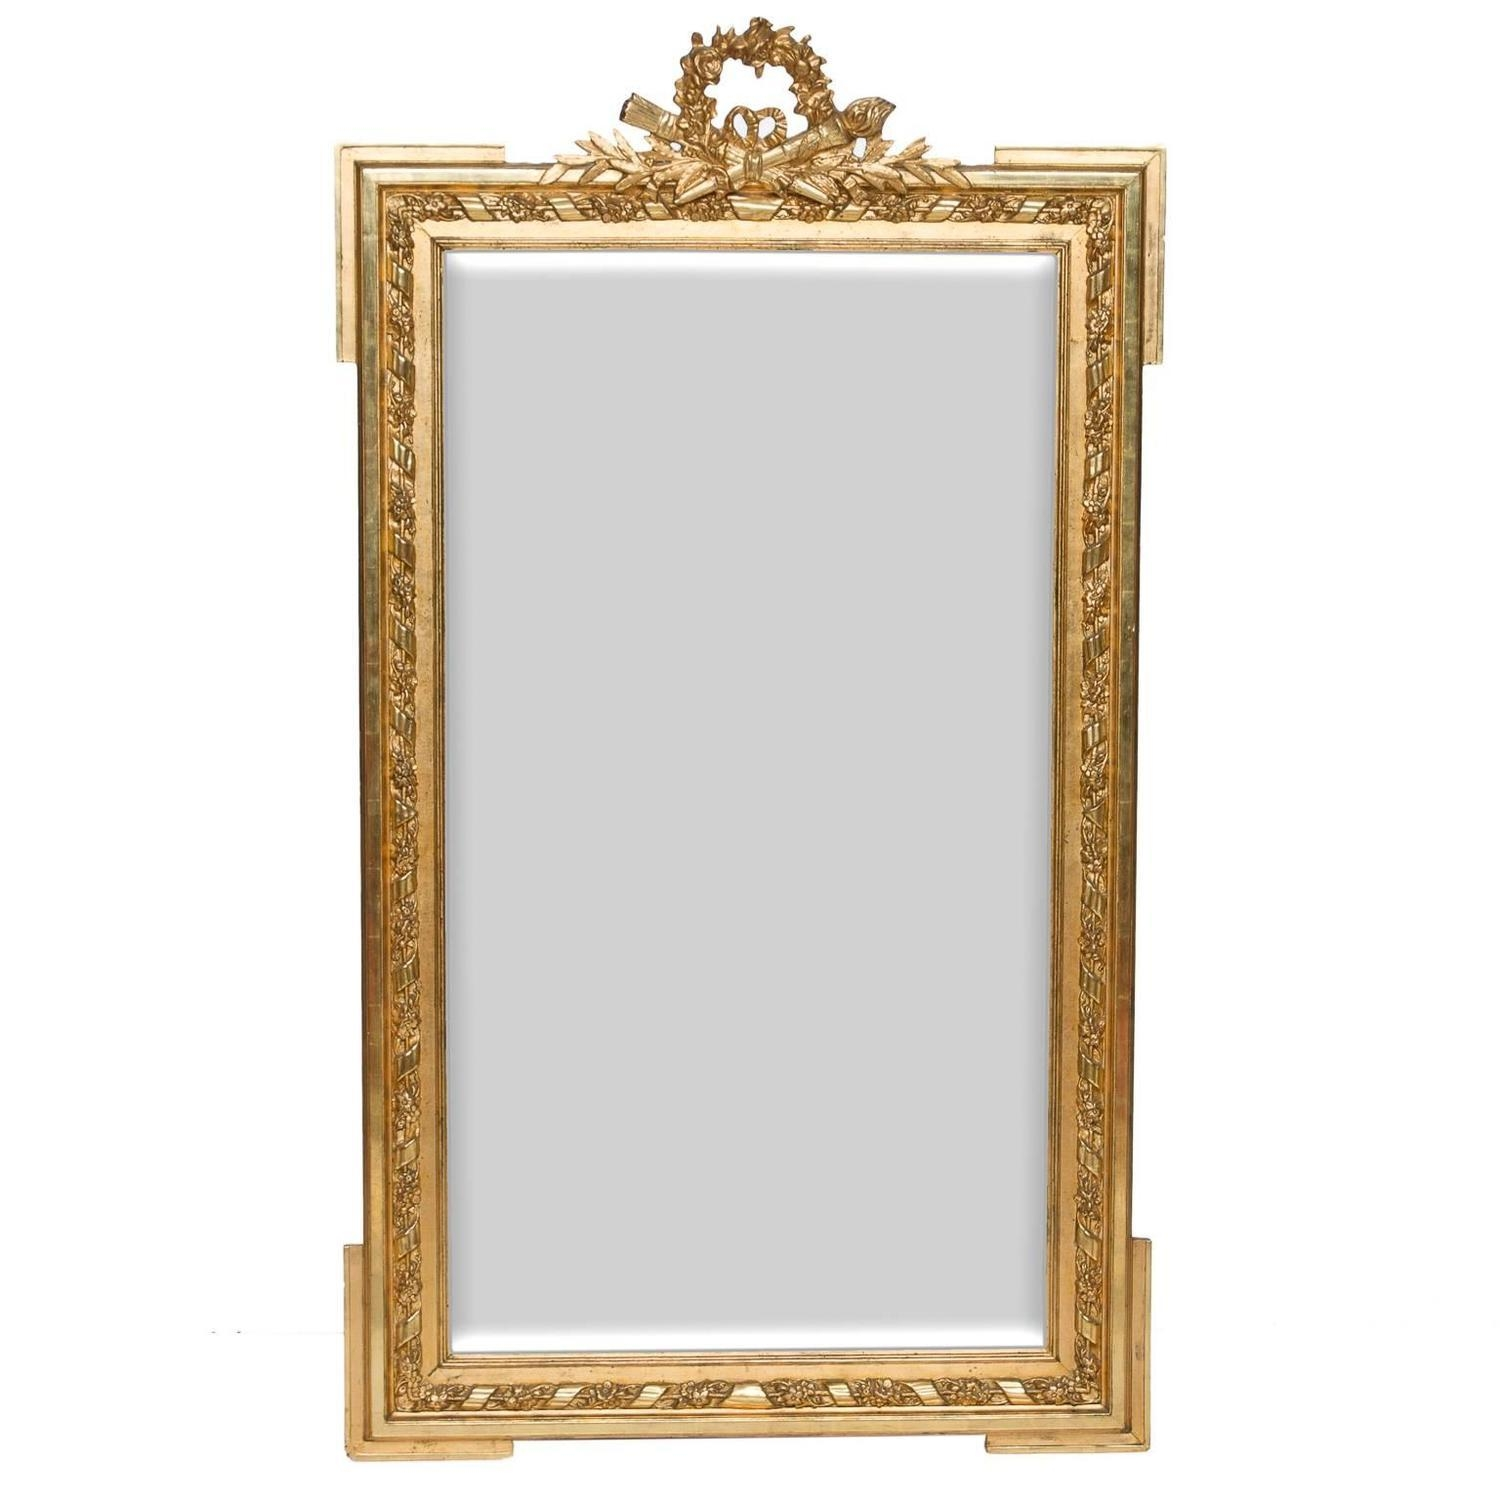 19Th Century Louis Xvi Gold Leaf Mirror At 1Stdibs Within Gold Antique Mirror (View 14 of 20)